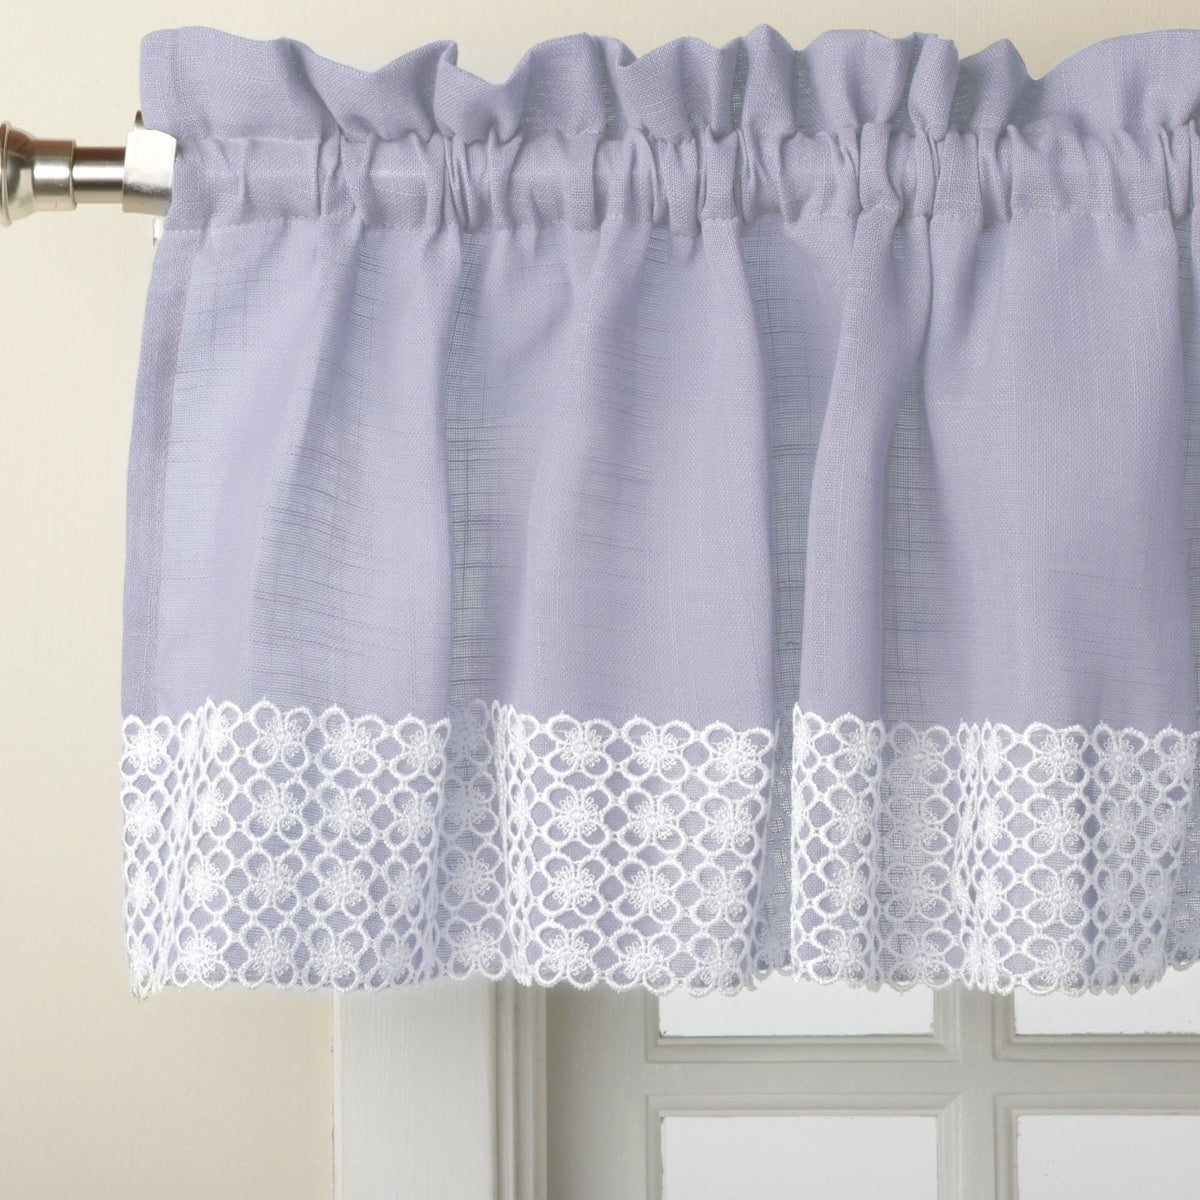 Blue Country Style Kitchen Curtains With White Daisy Lace Accent In Famous French Vanilla Country Style Curtain Parts With White Daisy Lace Accent (View 7 of 20)